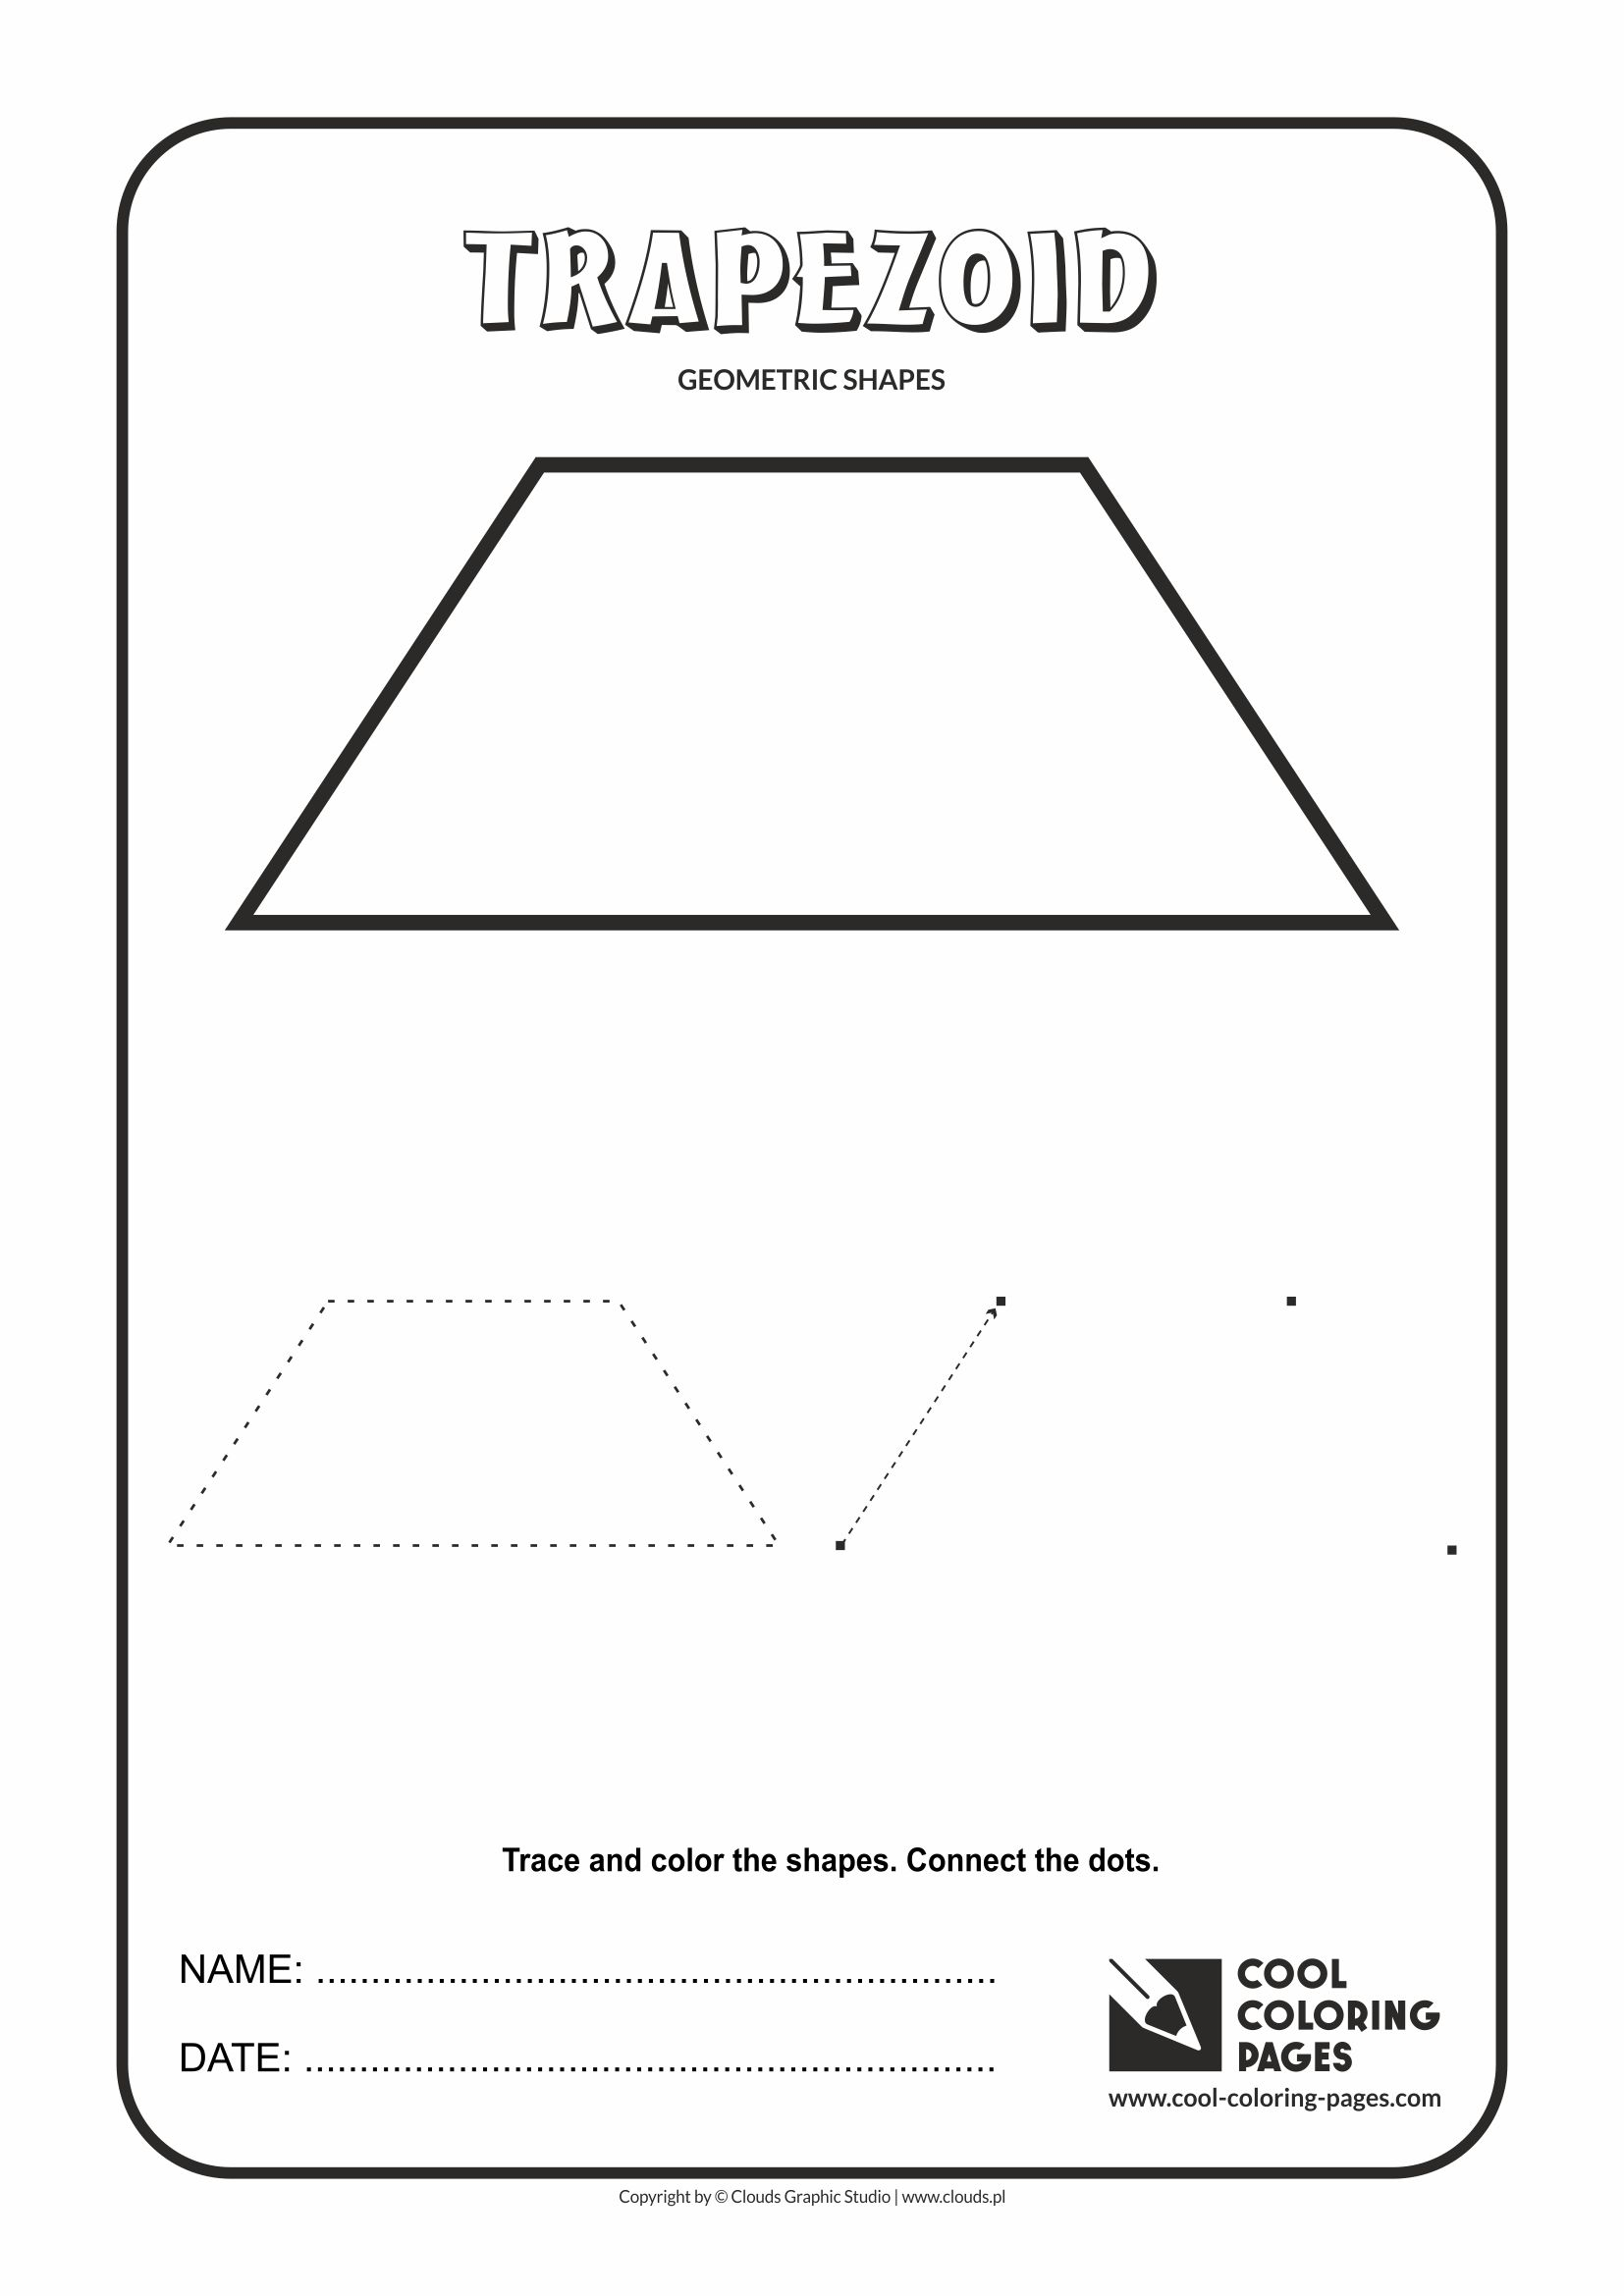 Cool Coloring Pages Geometric Shapes Trapezoid additionally Musical Instruments as well Pie Circle Coloring Page moreover Gumballpom also Preschool Friendship Coloring Pages. on circle coloring pages for preschoolers